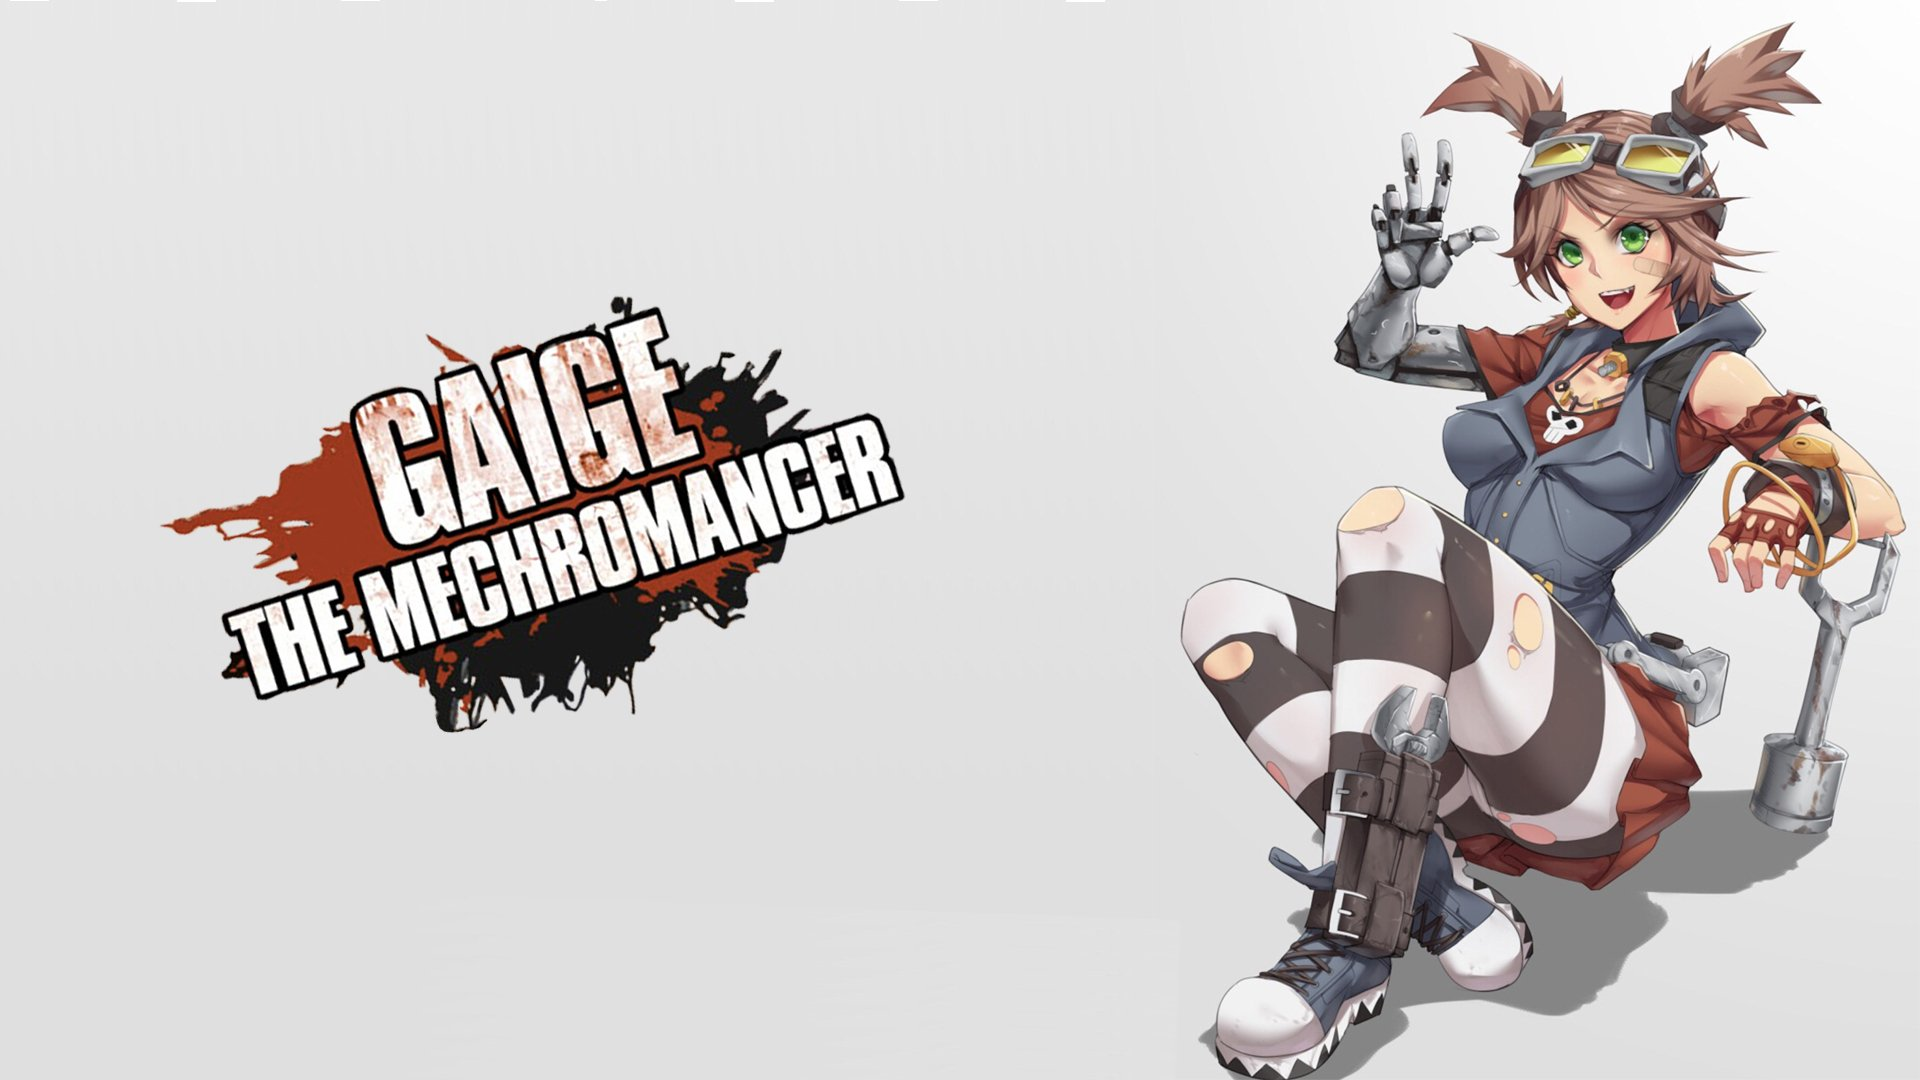 Gif As Wallpaper Iphone Gaige The Mechromancer Hd Wallpaper Background Image